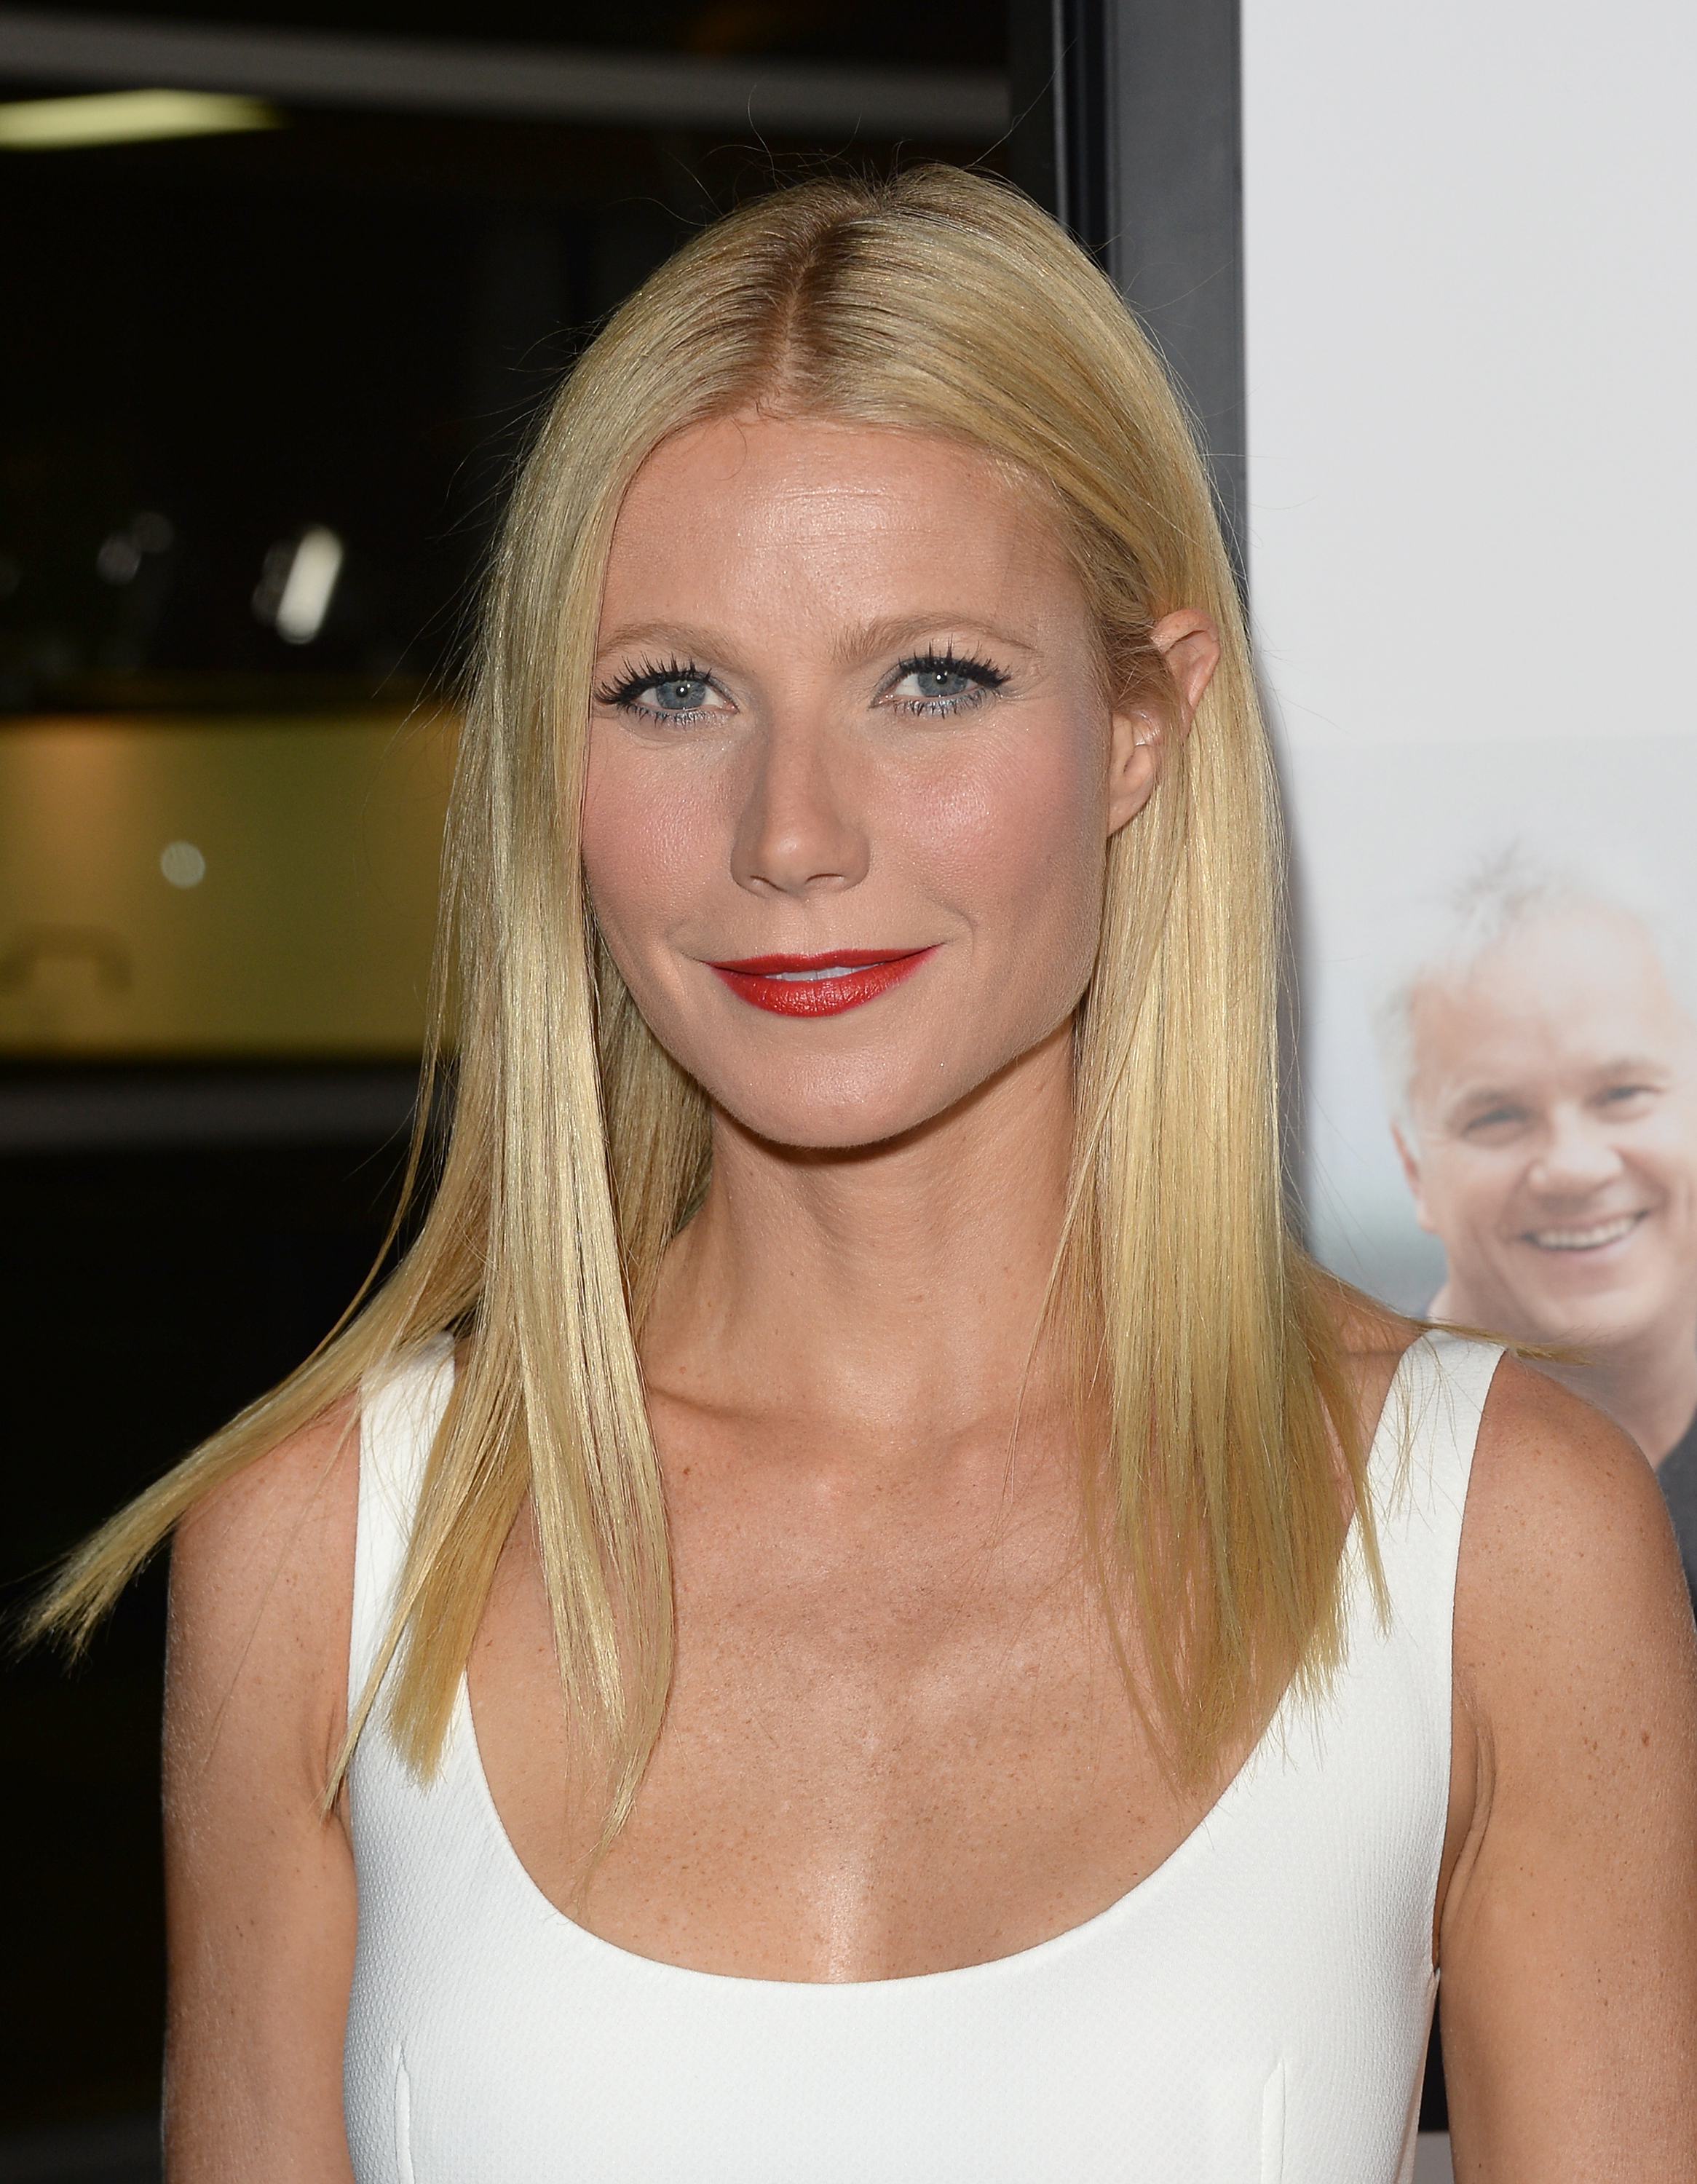 Actress Gwyneth Paltrow on September 16, 2013 in Hollywood, California.